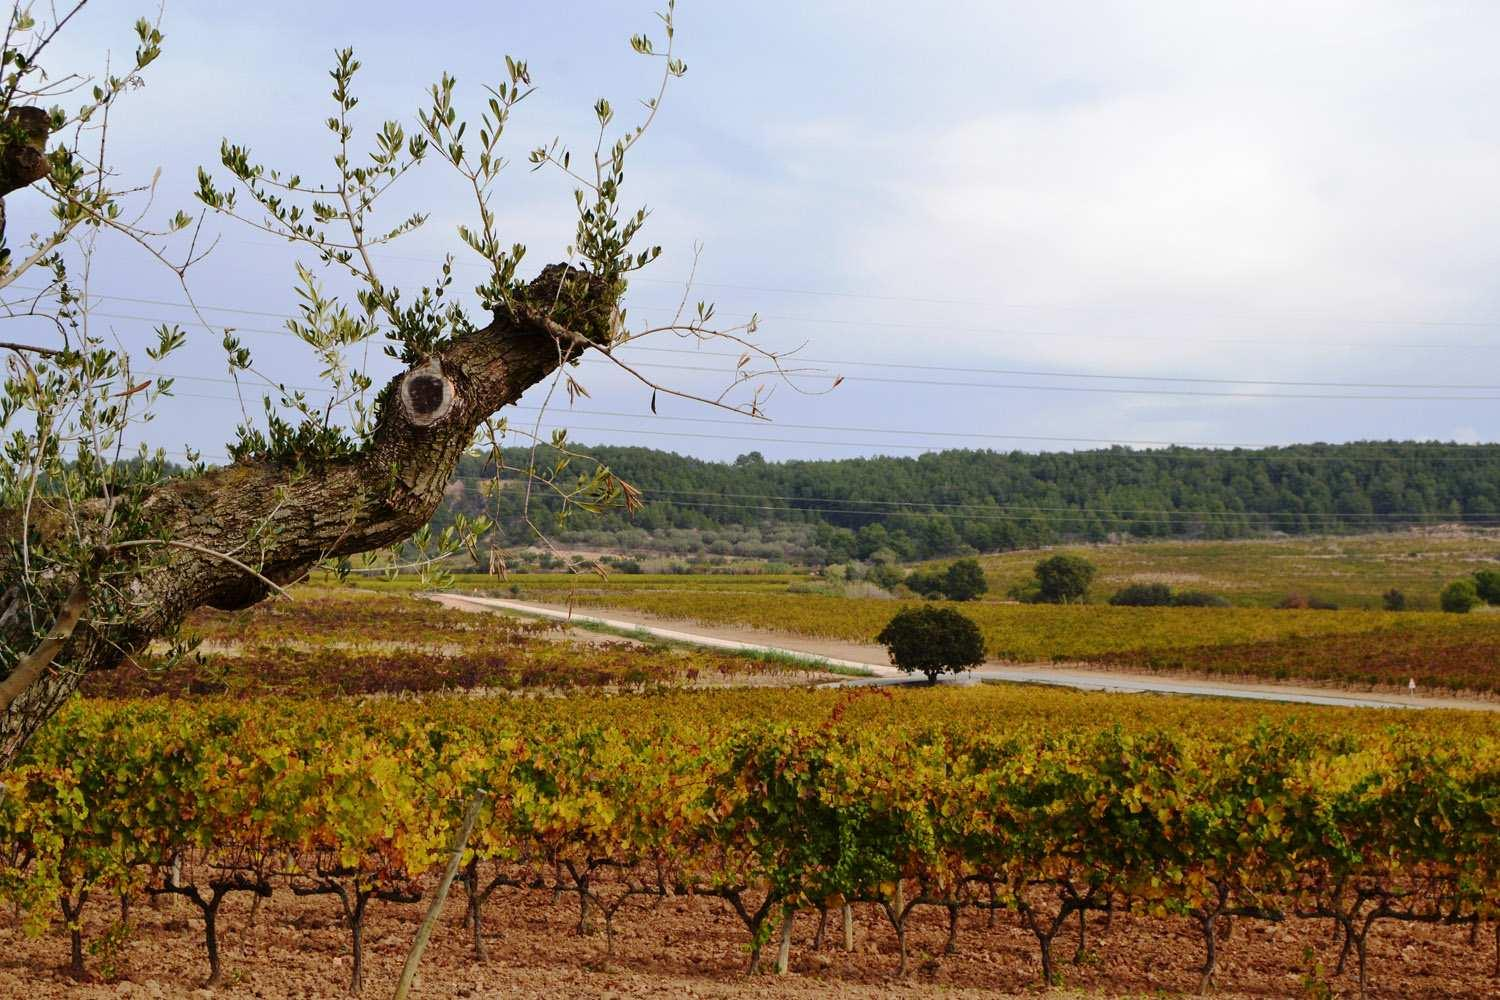 1 day wine tour near Barcelona